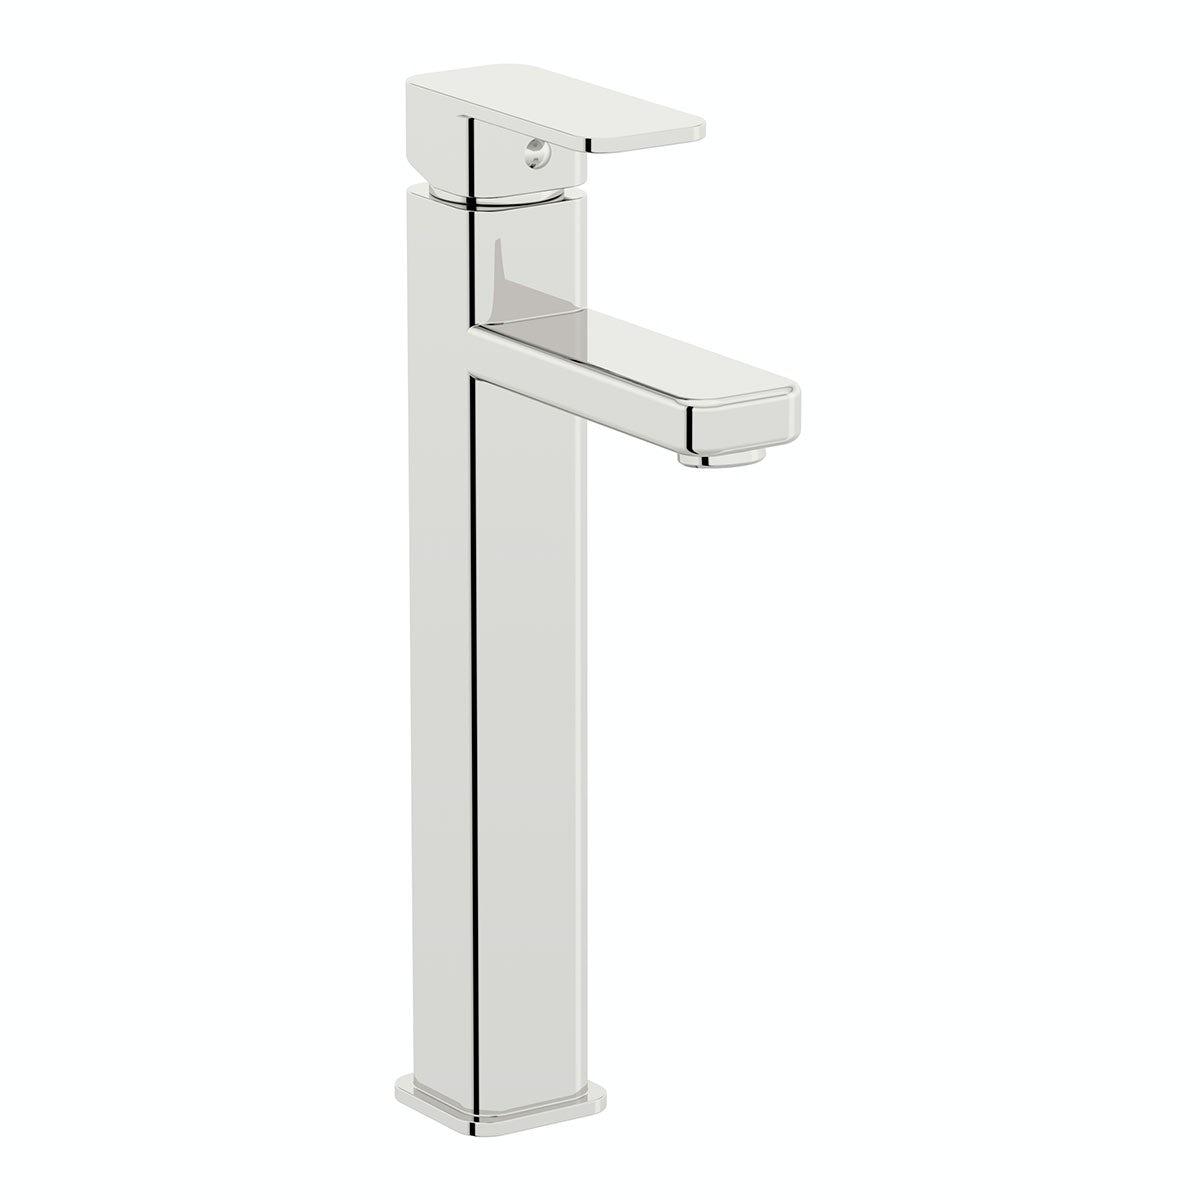 Orchard Quartz high rise counter top basin mixer offer pack